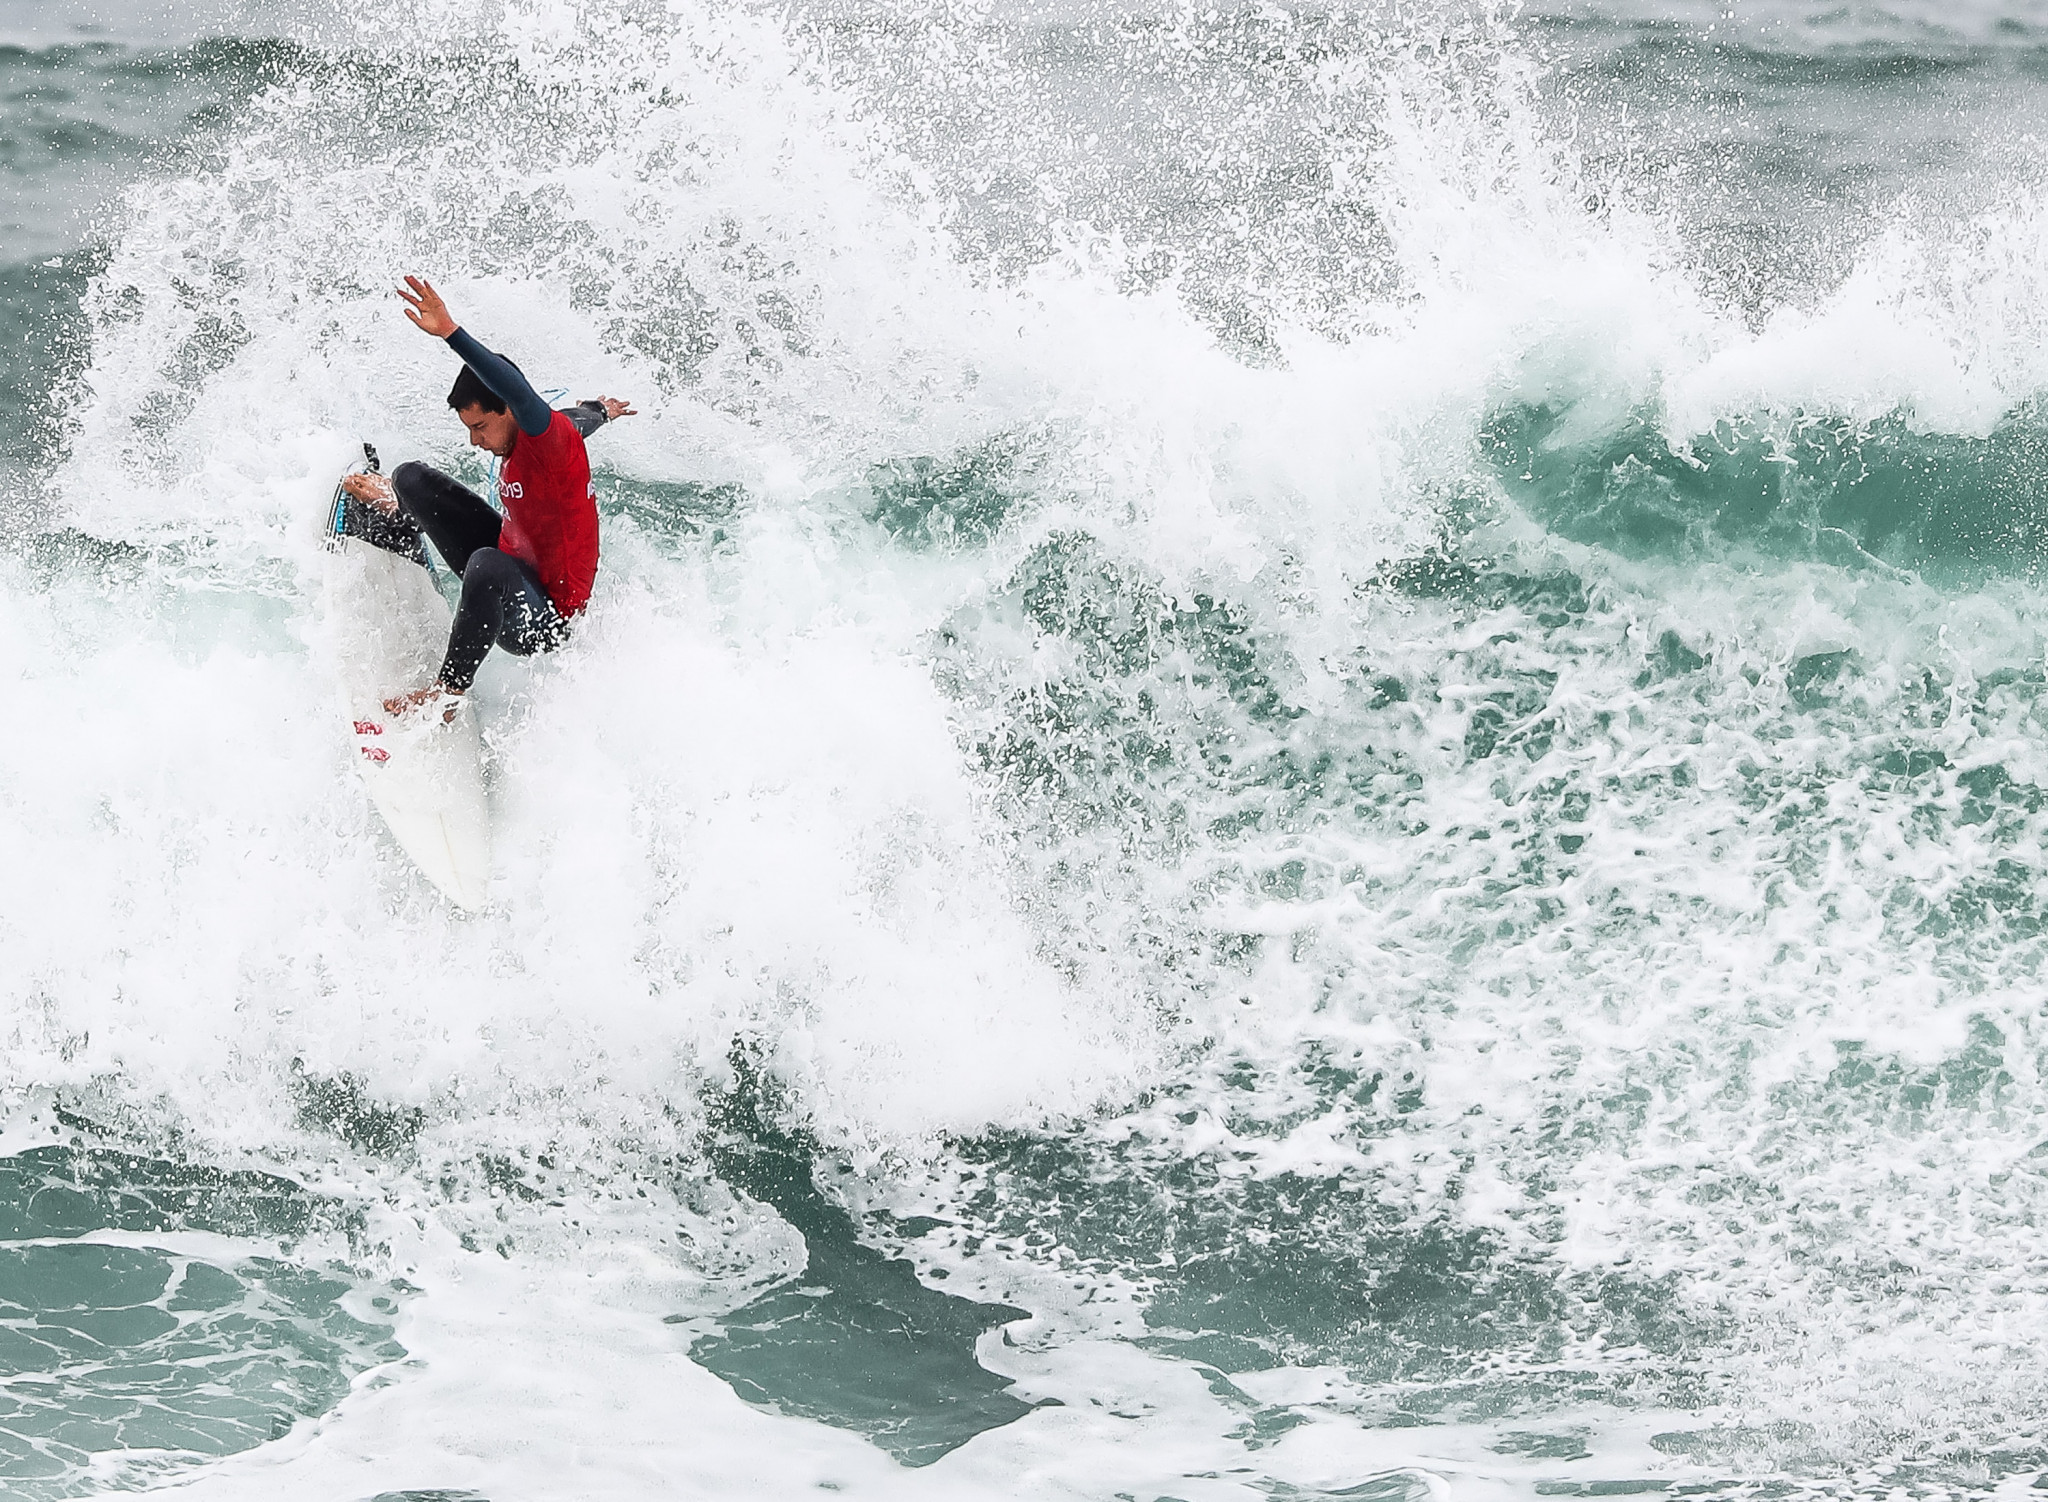 Surfing events have been well attended by Peruvians at Lima 2019 ©Getty Images